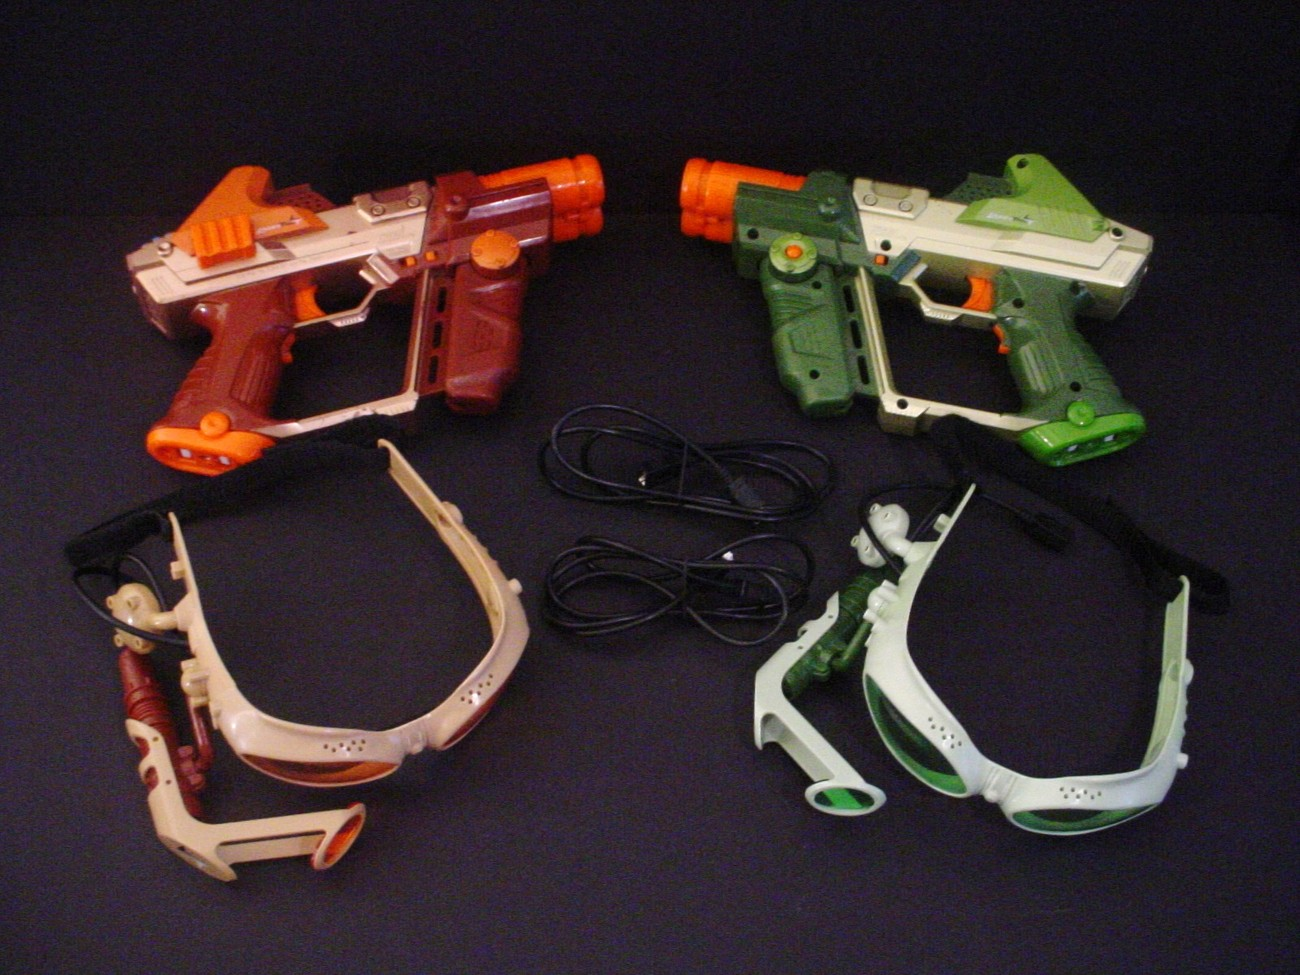 Tiger Lazer Tag Team OPS Deluxe Laser Guns an Goggles